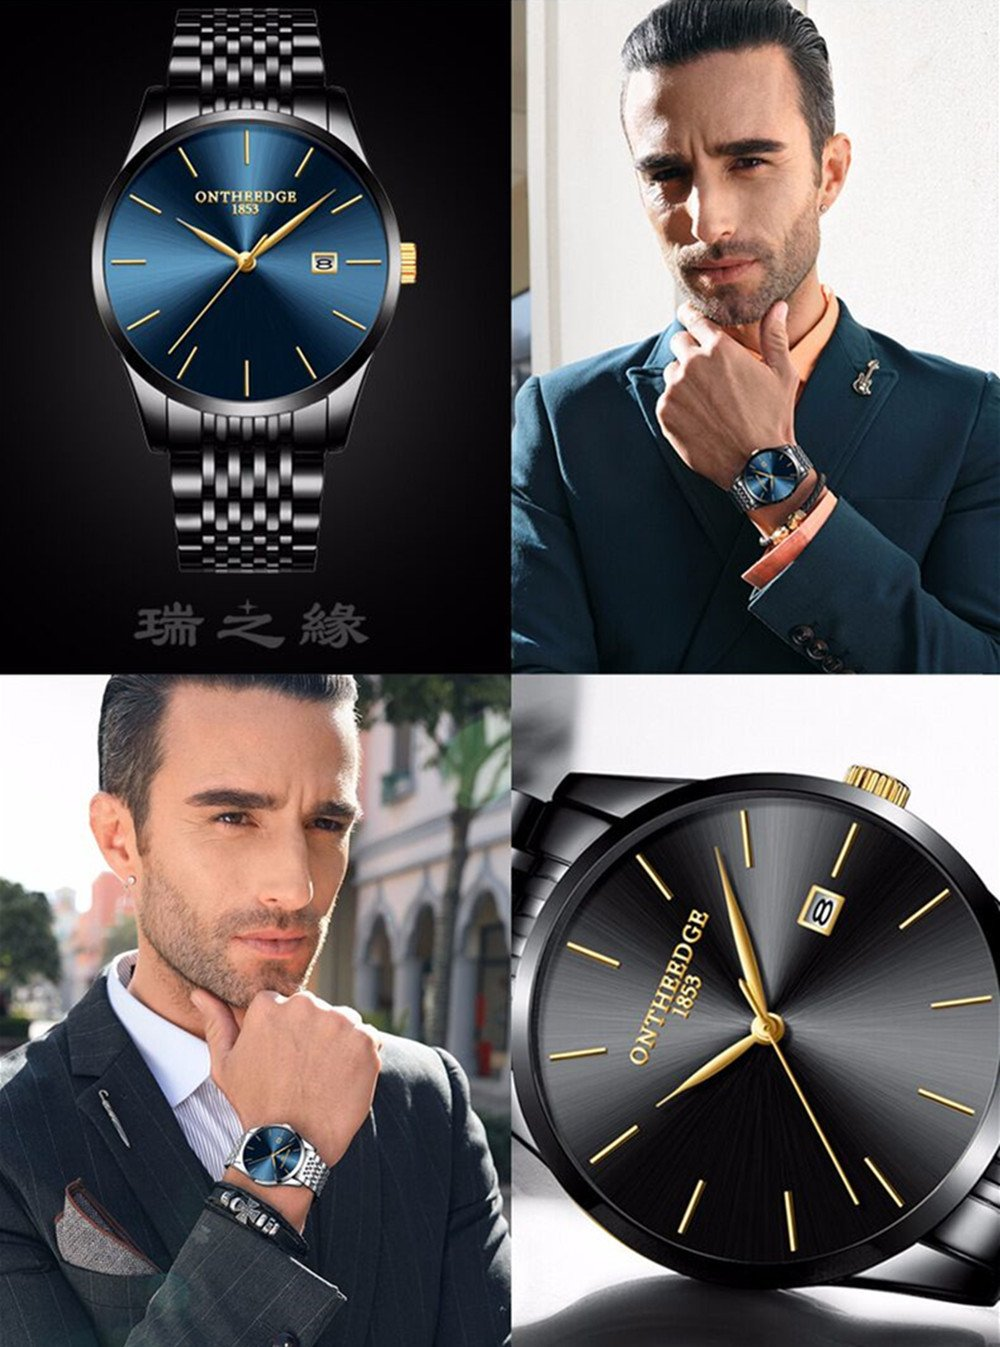 L& H Jewelry Mens Business Watch Fashion Super Thin Quartz Movement Analog Watch Pointer Display Watch (Pure Blak) by L & H Jewelry (Image #7)